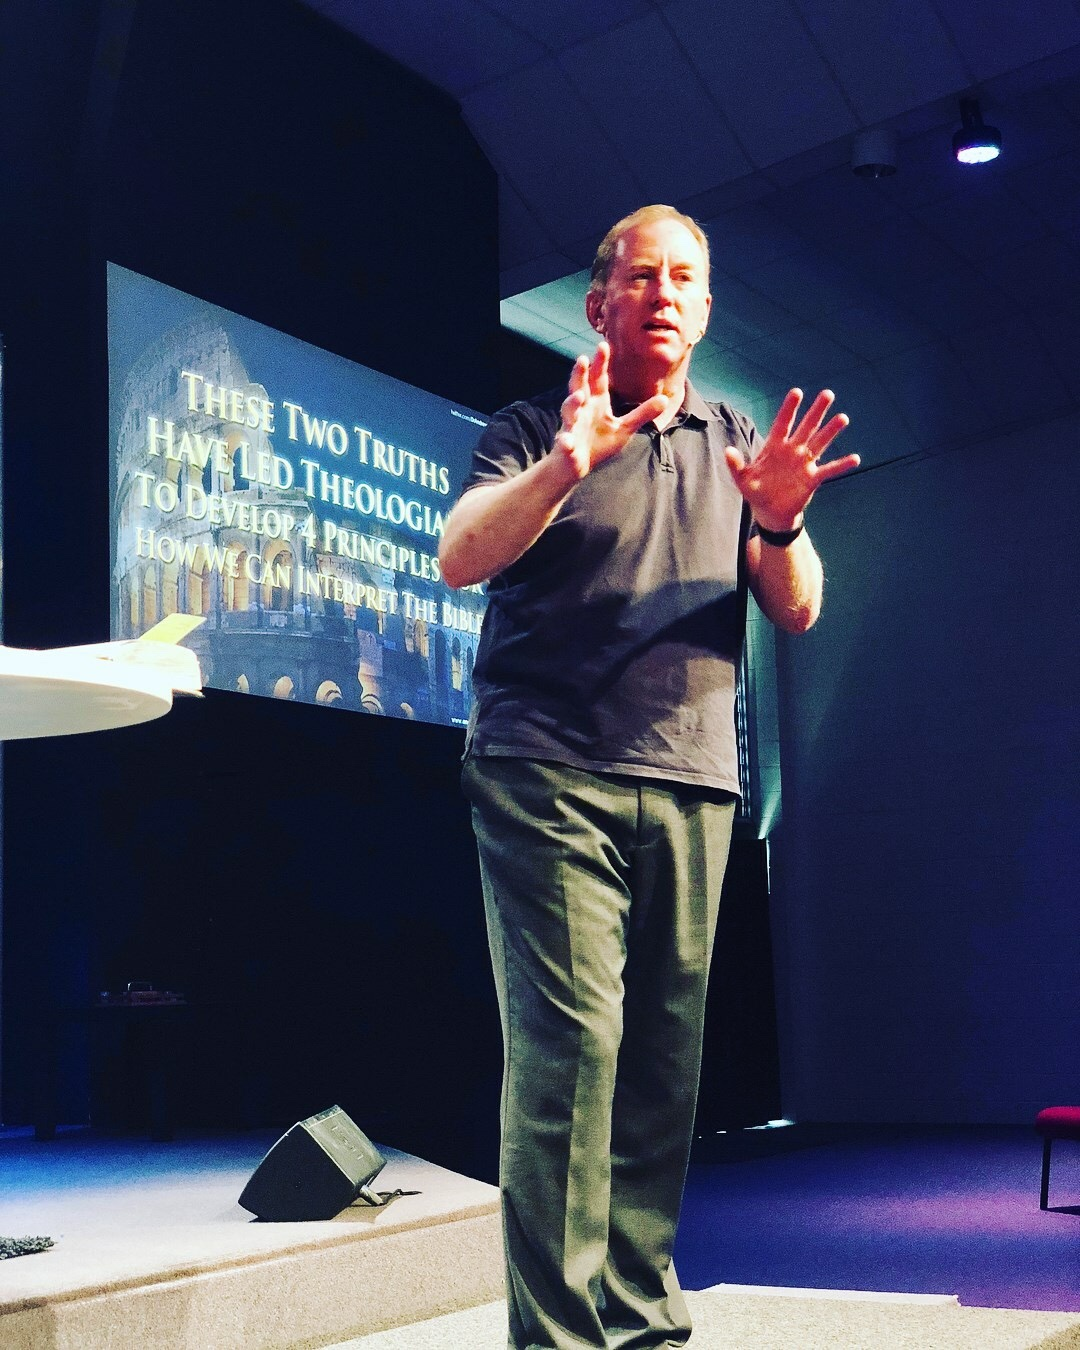 Dr. Andrew Corbett speaking at Our Church, Burleigh, QLD